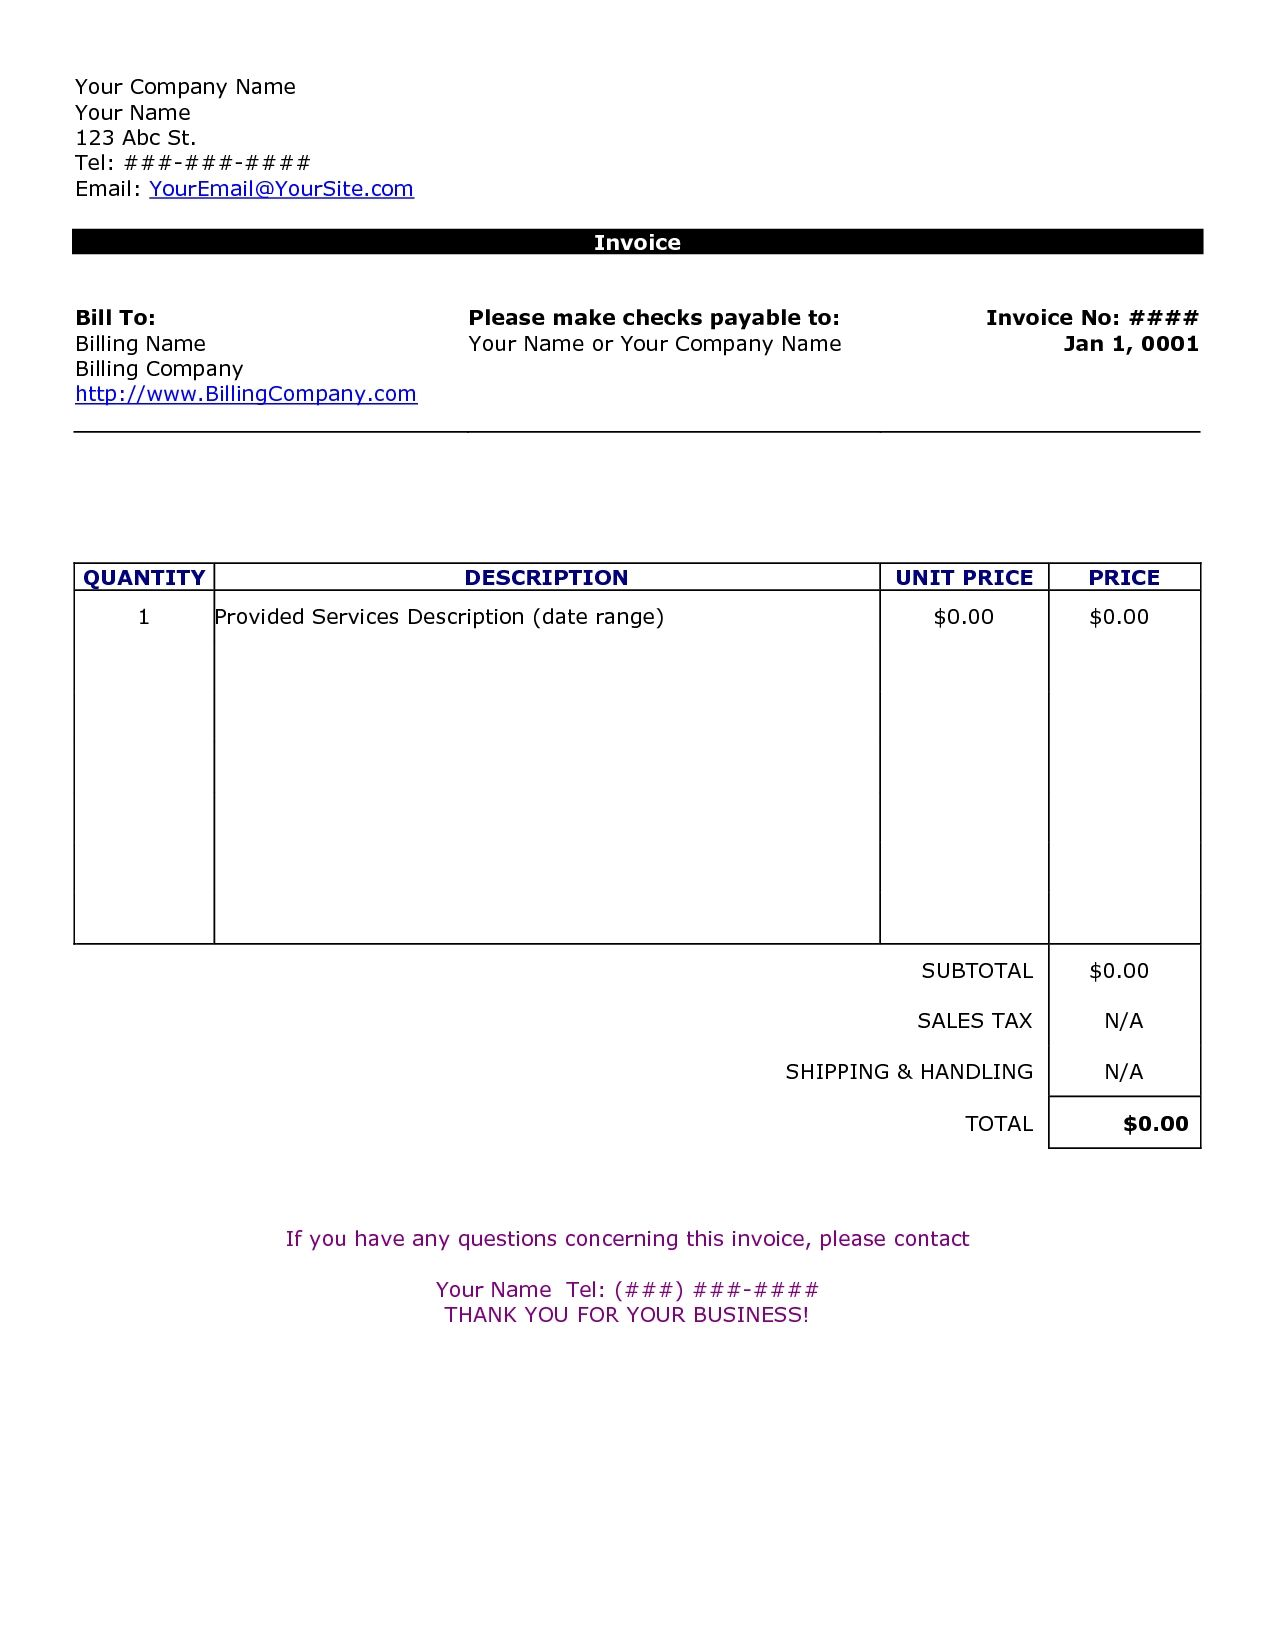 word document invoice template blank invoice doc 2016wwwmahtaweb ...